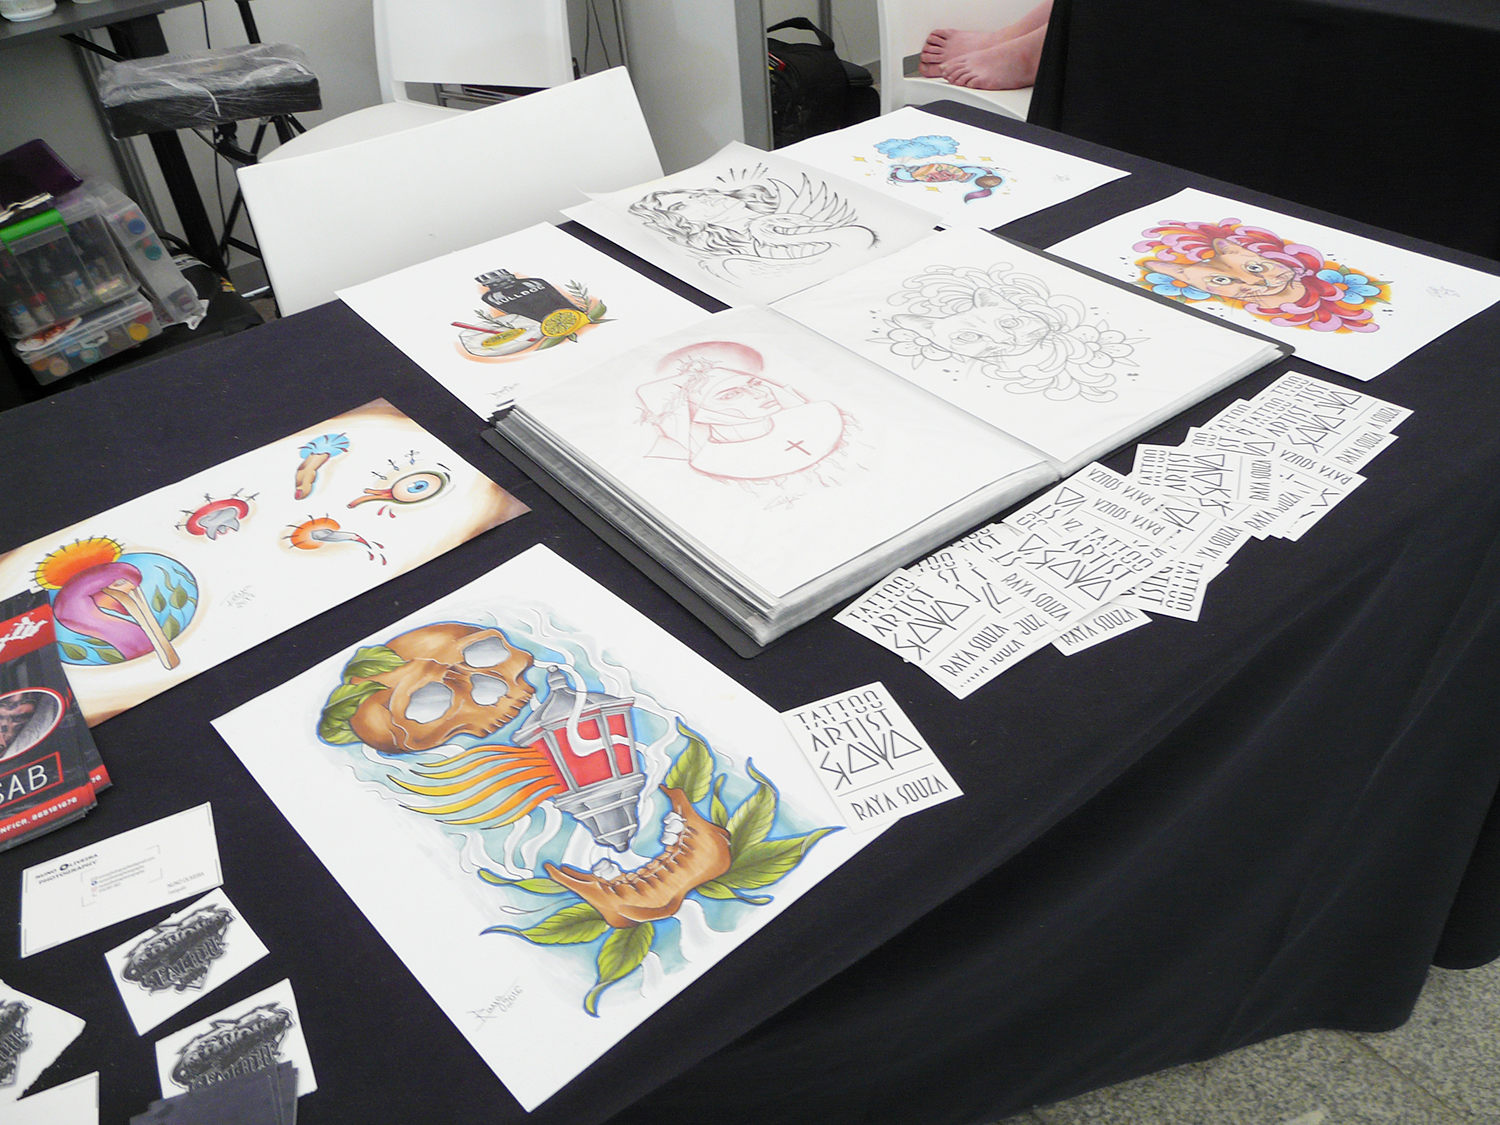 Raya Souza tattoo booth, flash art and stickers